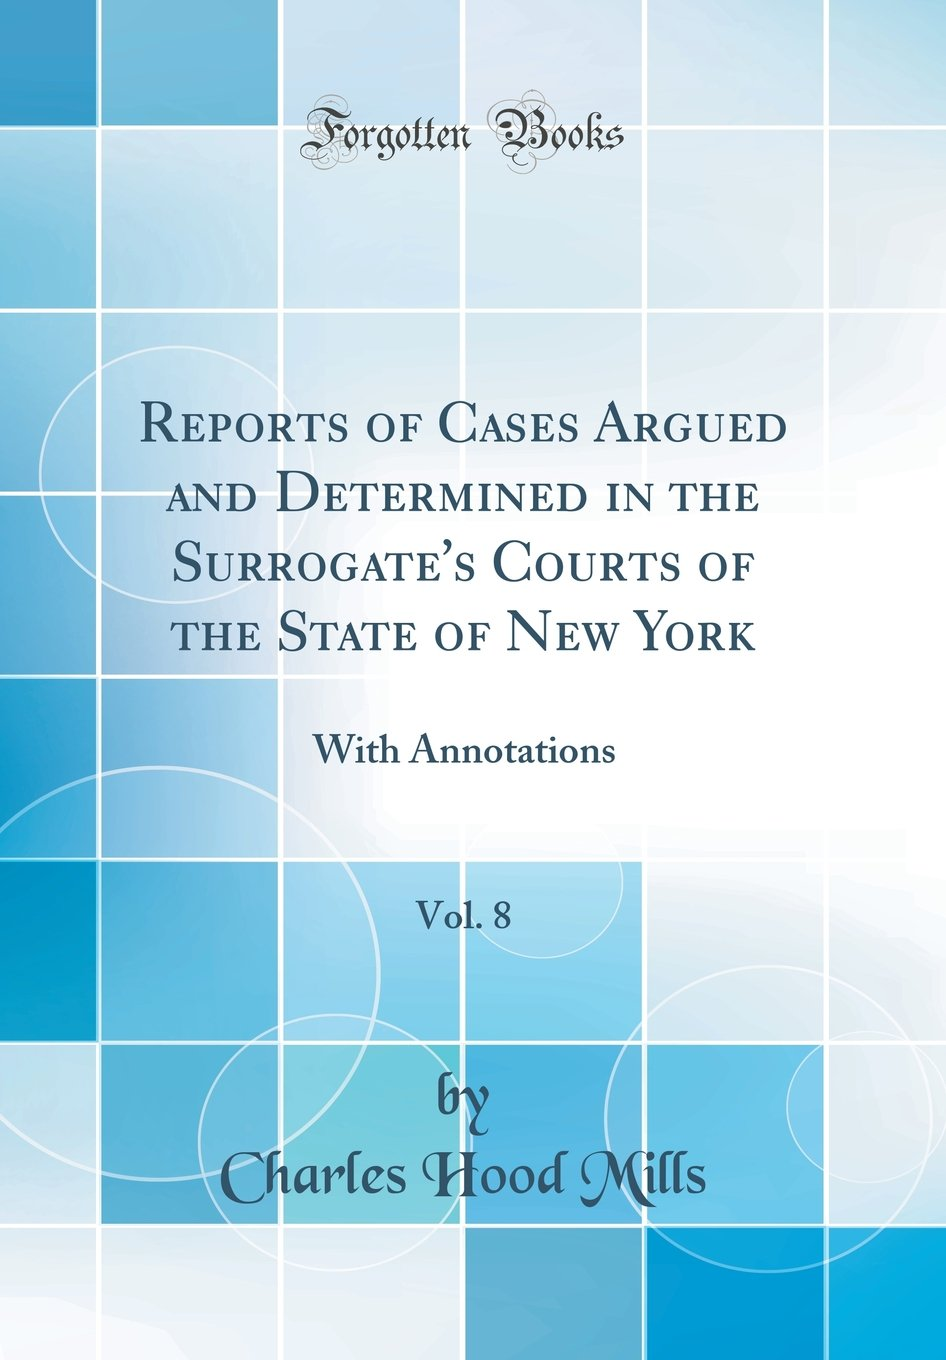 Download Reports of Cases Argued and Determined in the Surrogate's Courts of the State of New York, Vol. 8: With Annotations (Classic Reprint) ebook